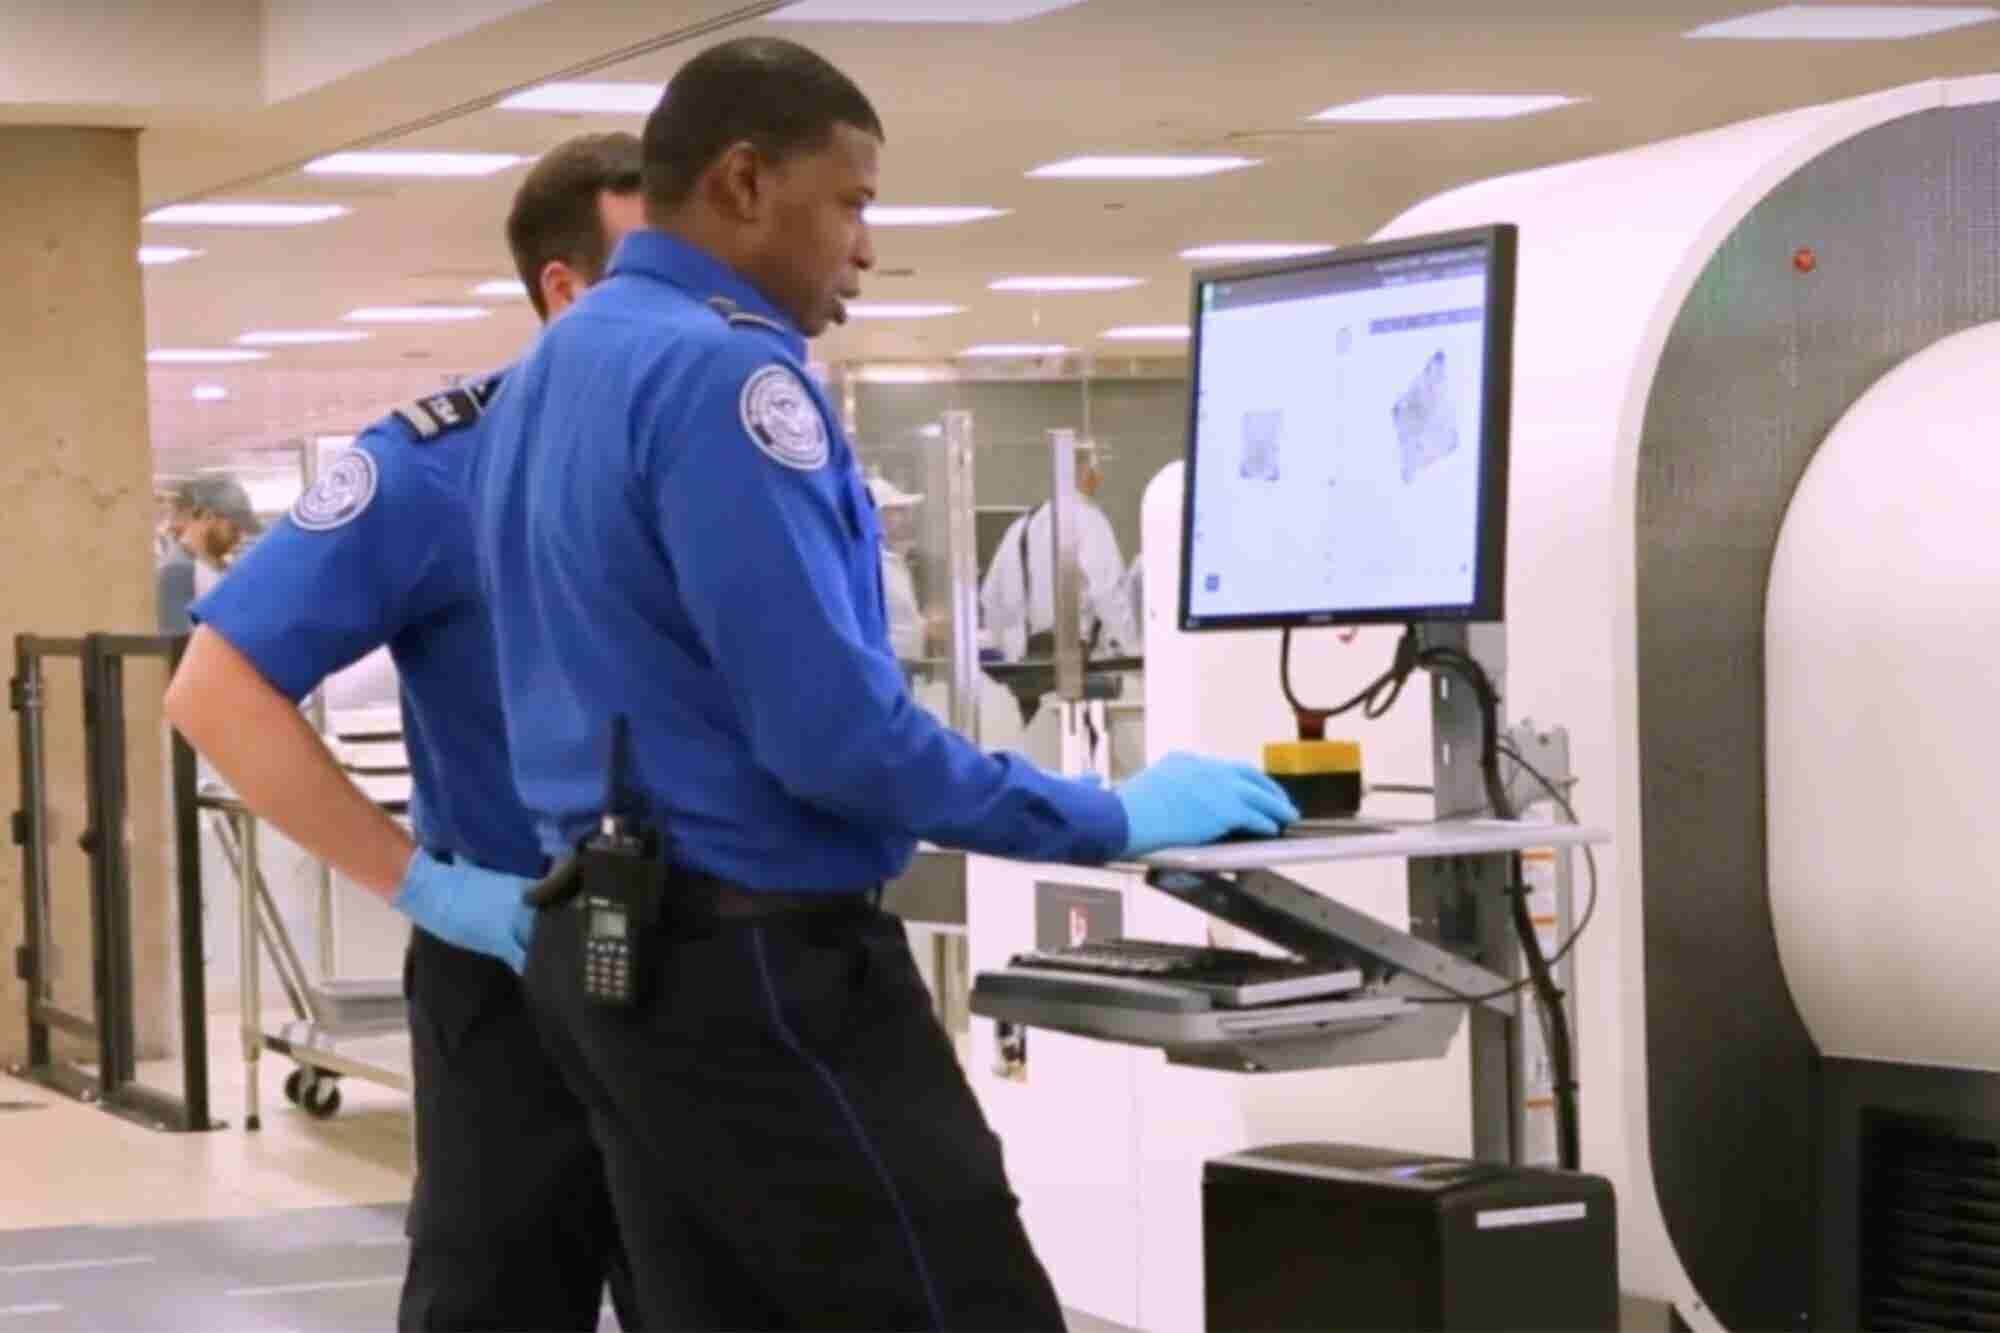 New TSA Scanning Tech Will Let You Keep Laptops in Your Bag